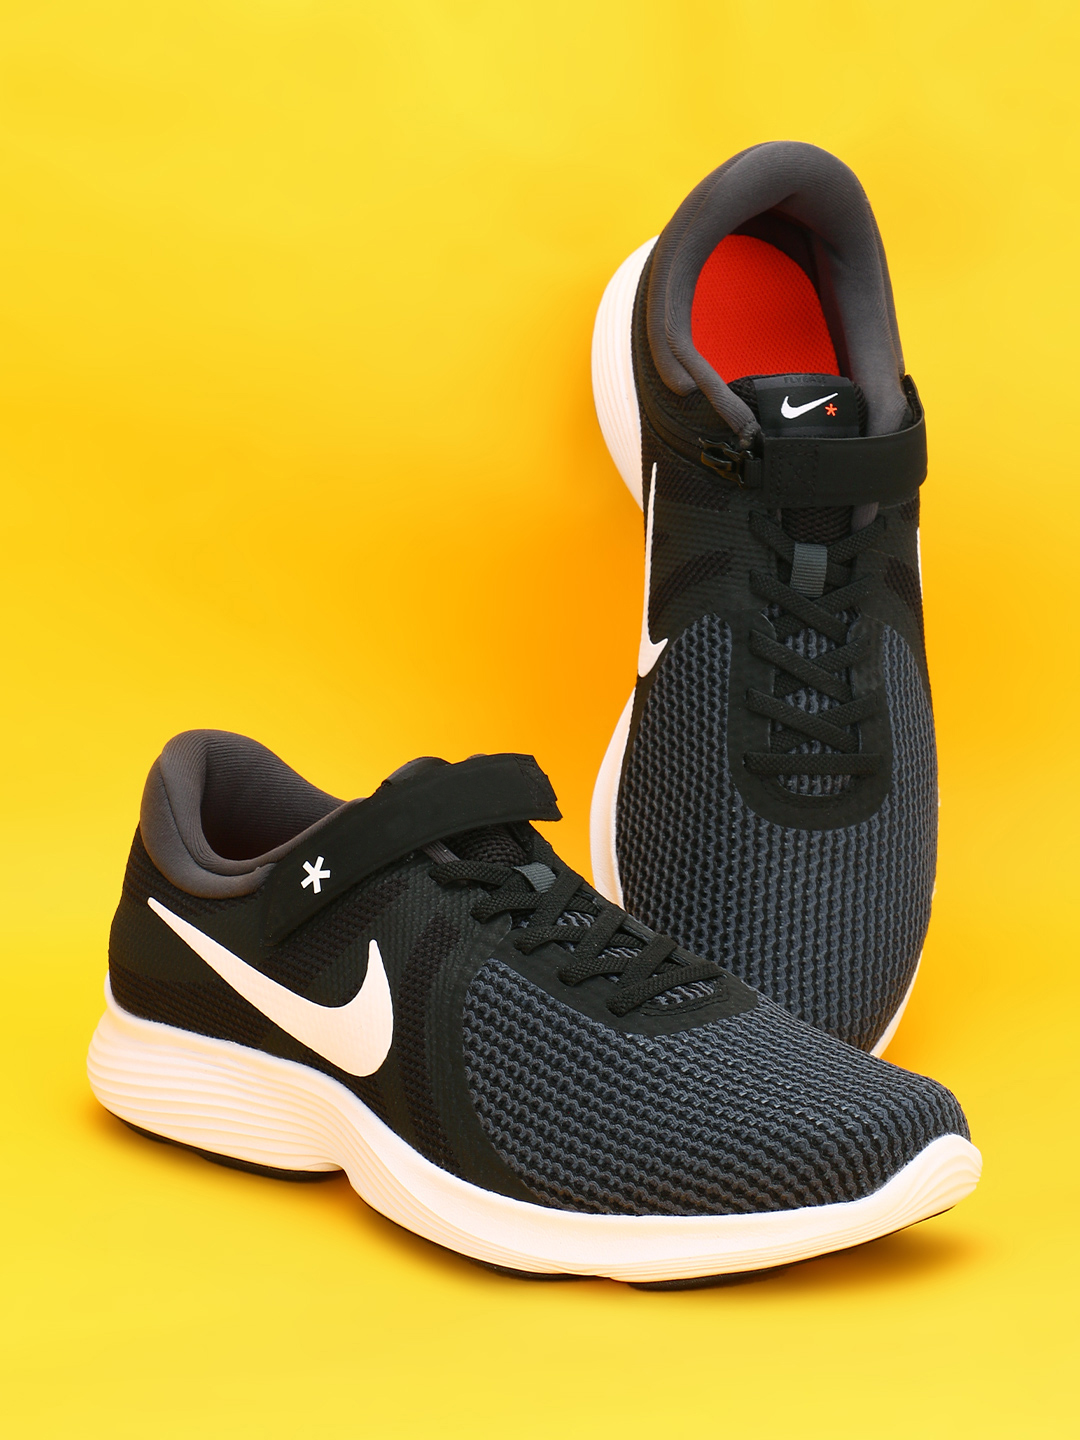 Nike Black Revolution 4 Flyease Shoes 1